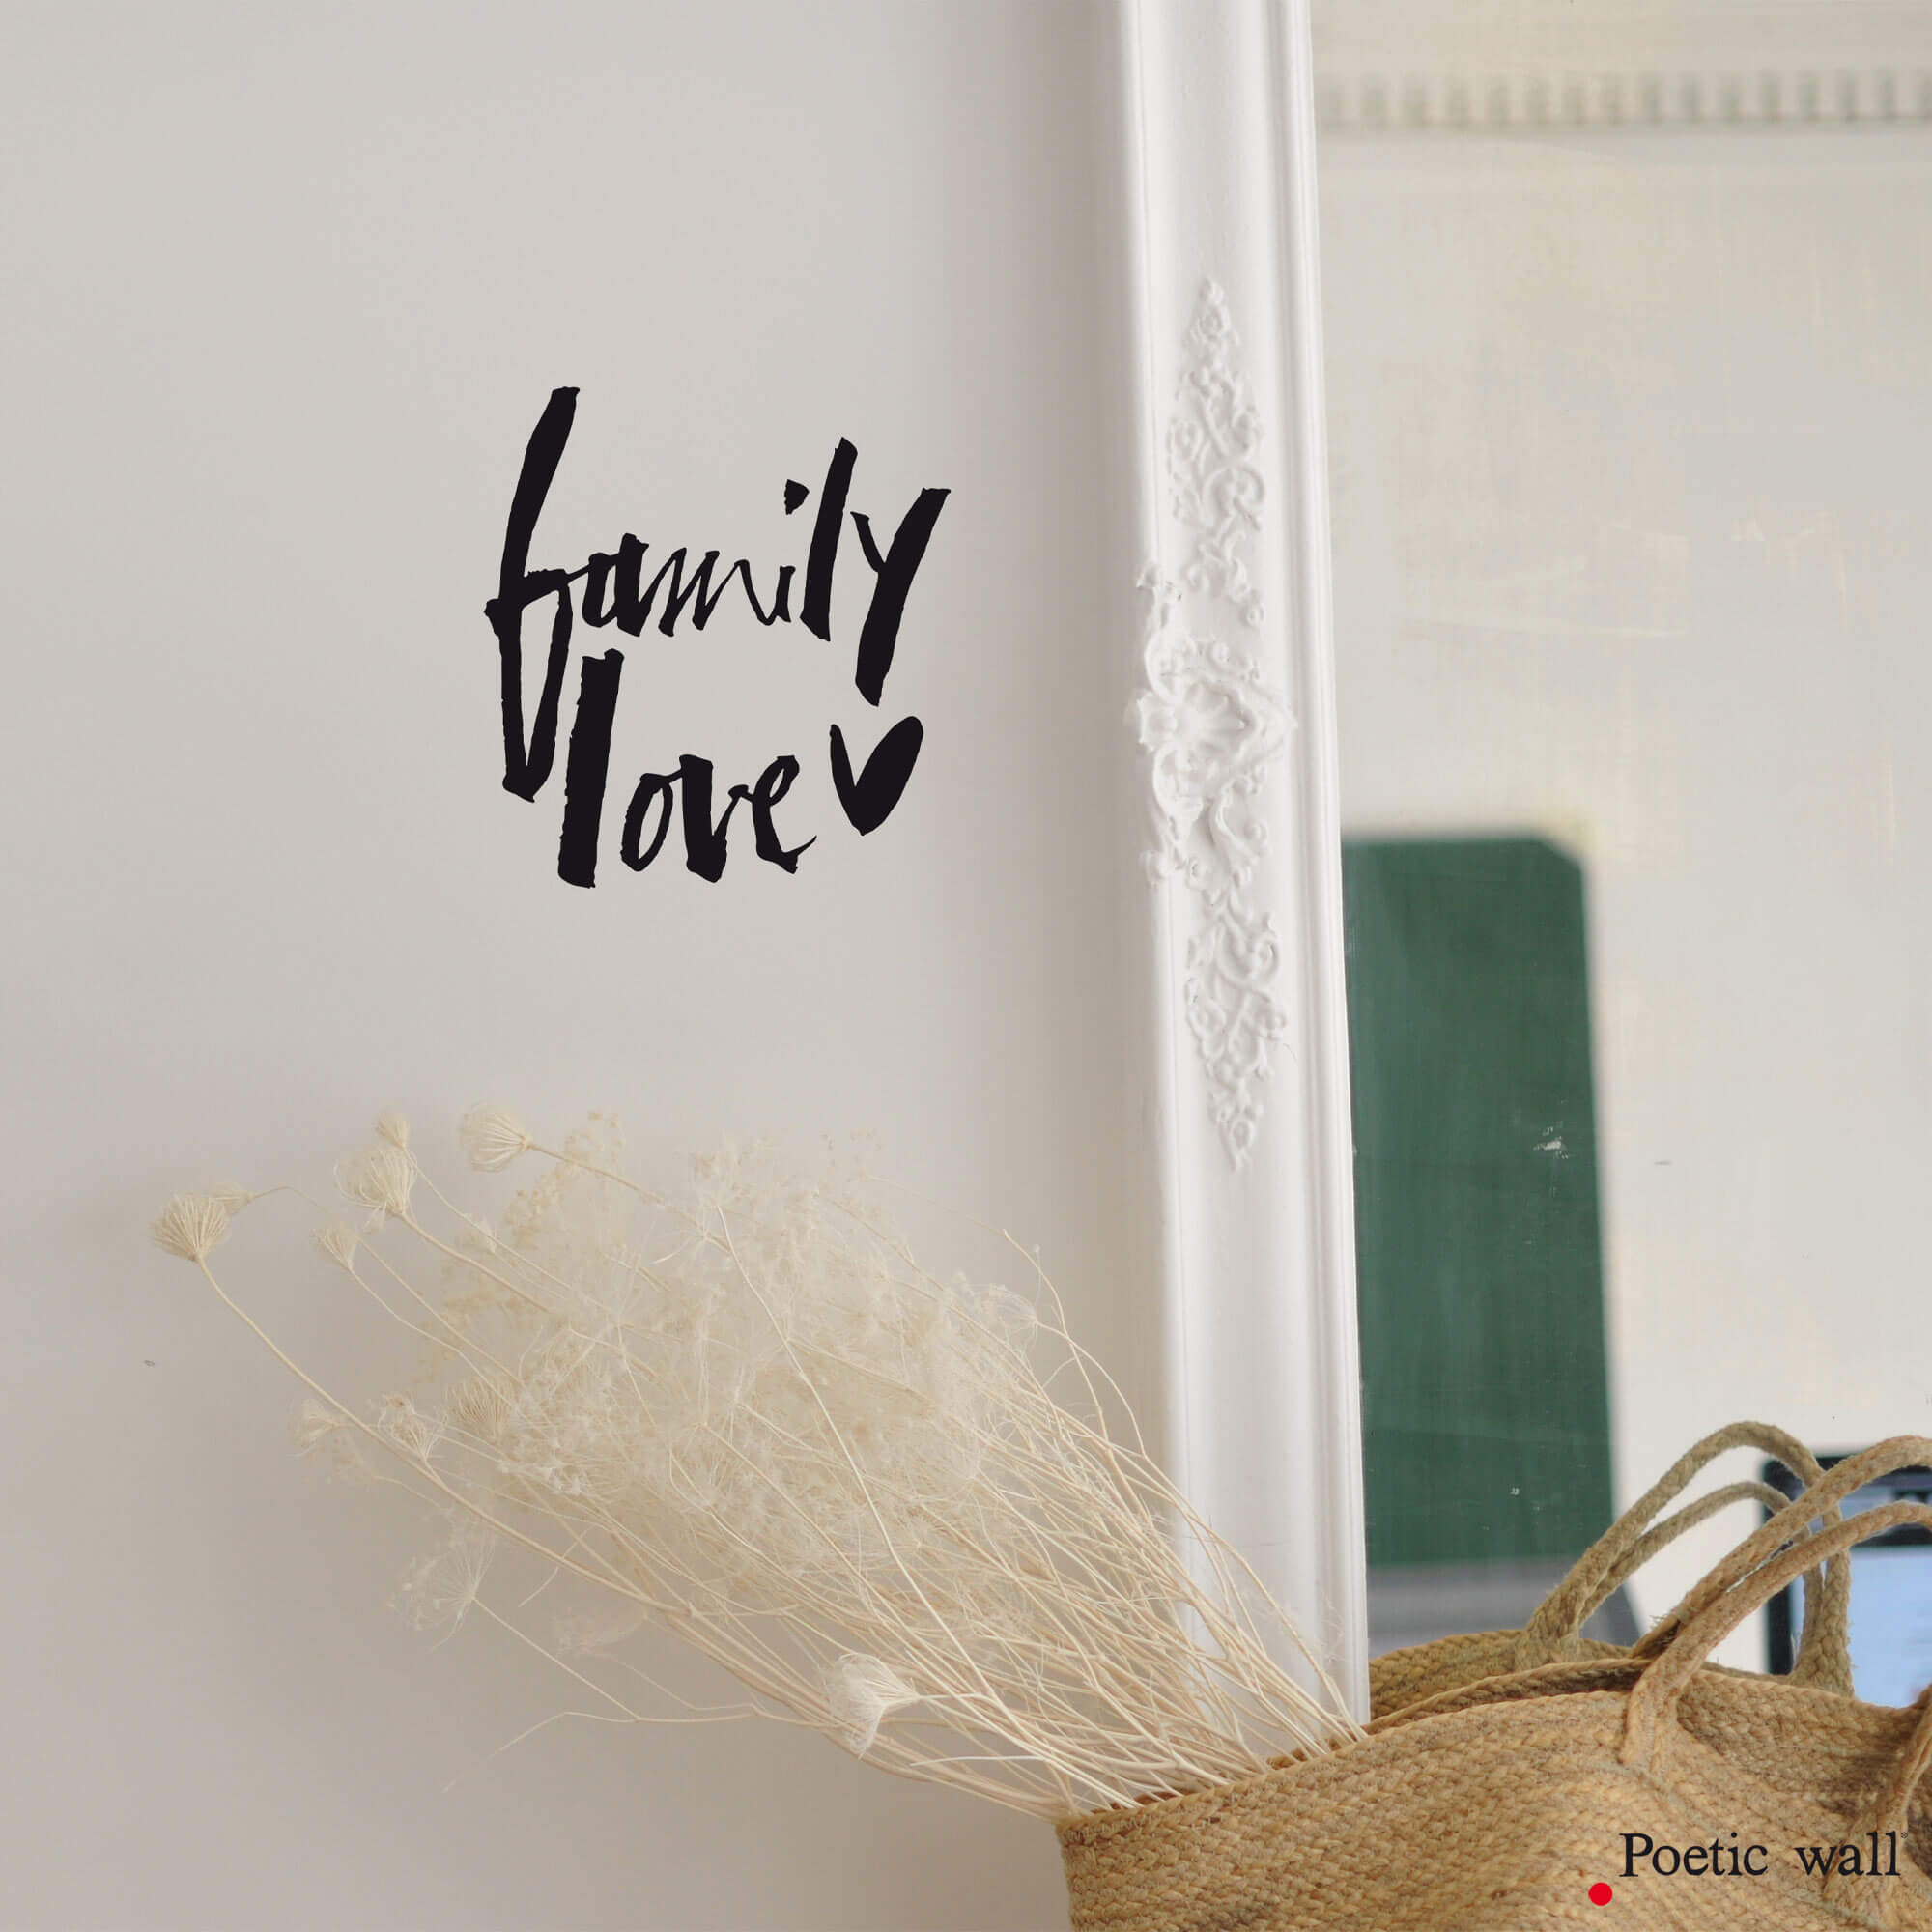 sticker texte family love poetic wall